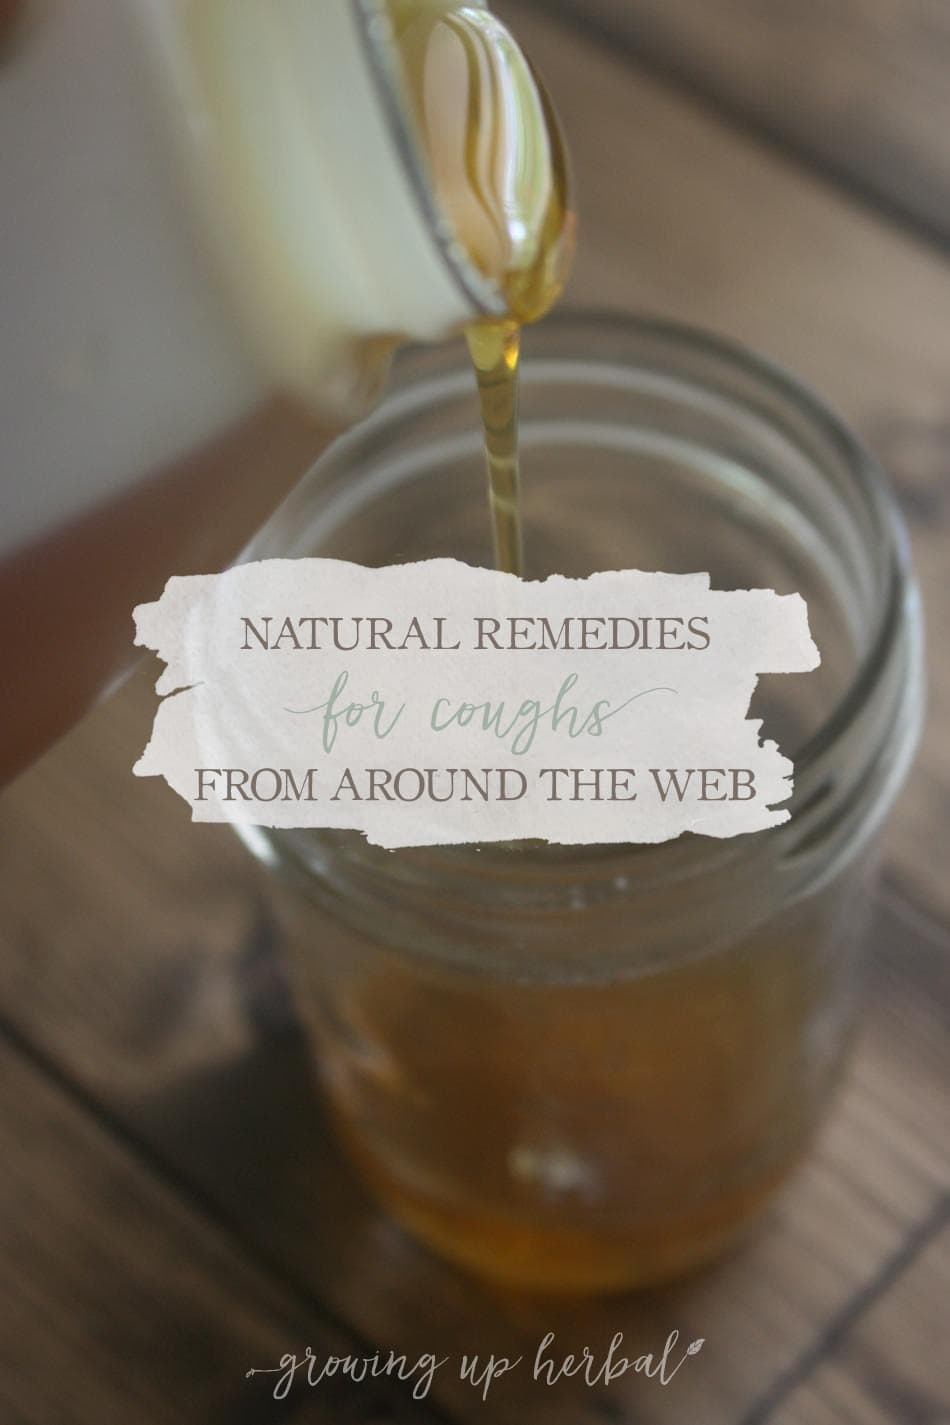 Natural Remedies For Coughs From Around The Web | Growing Up Herbal | Enjoy these great cough remedies from bloggers around the web!